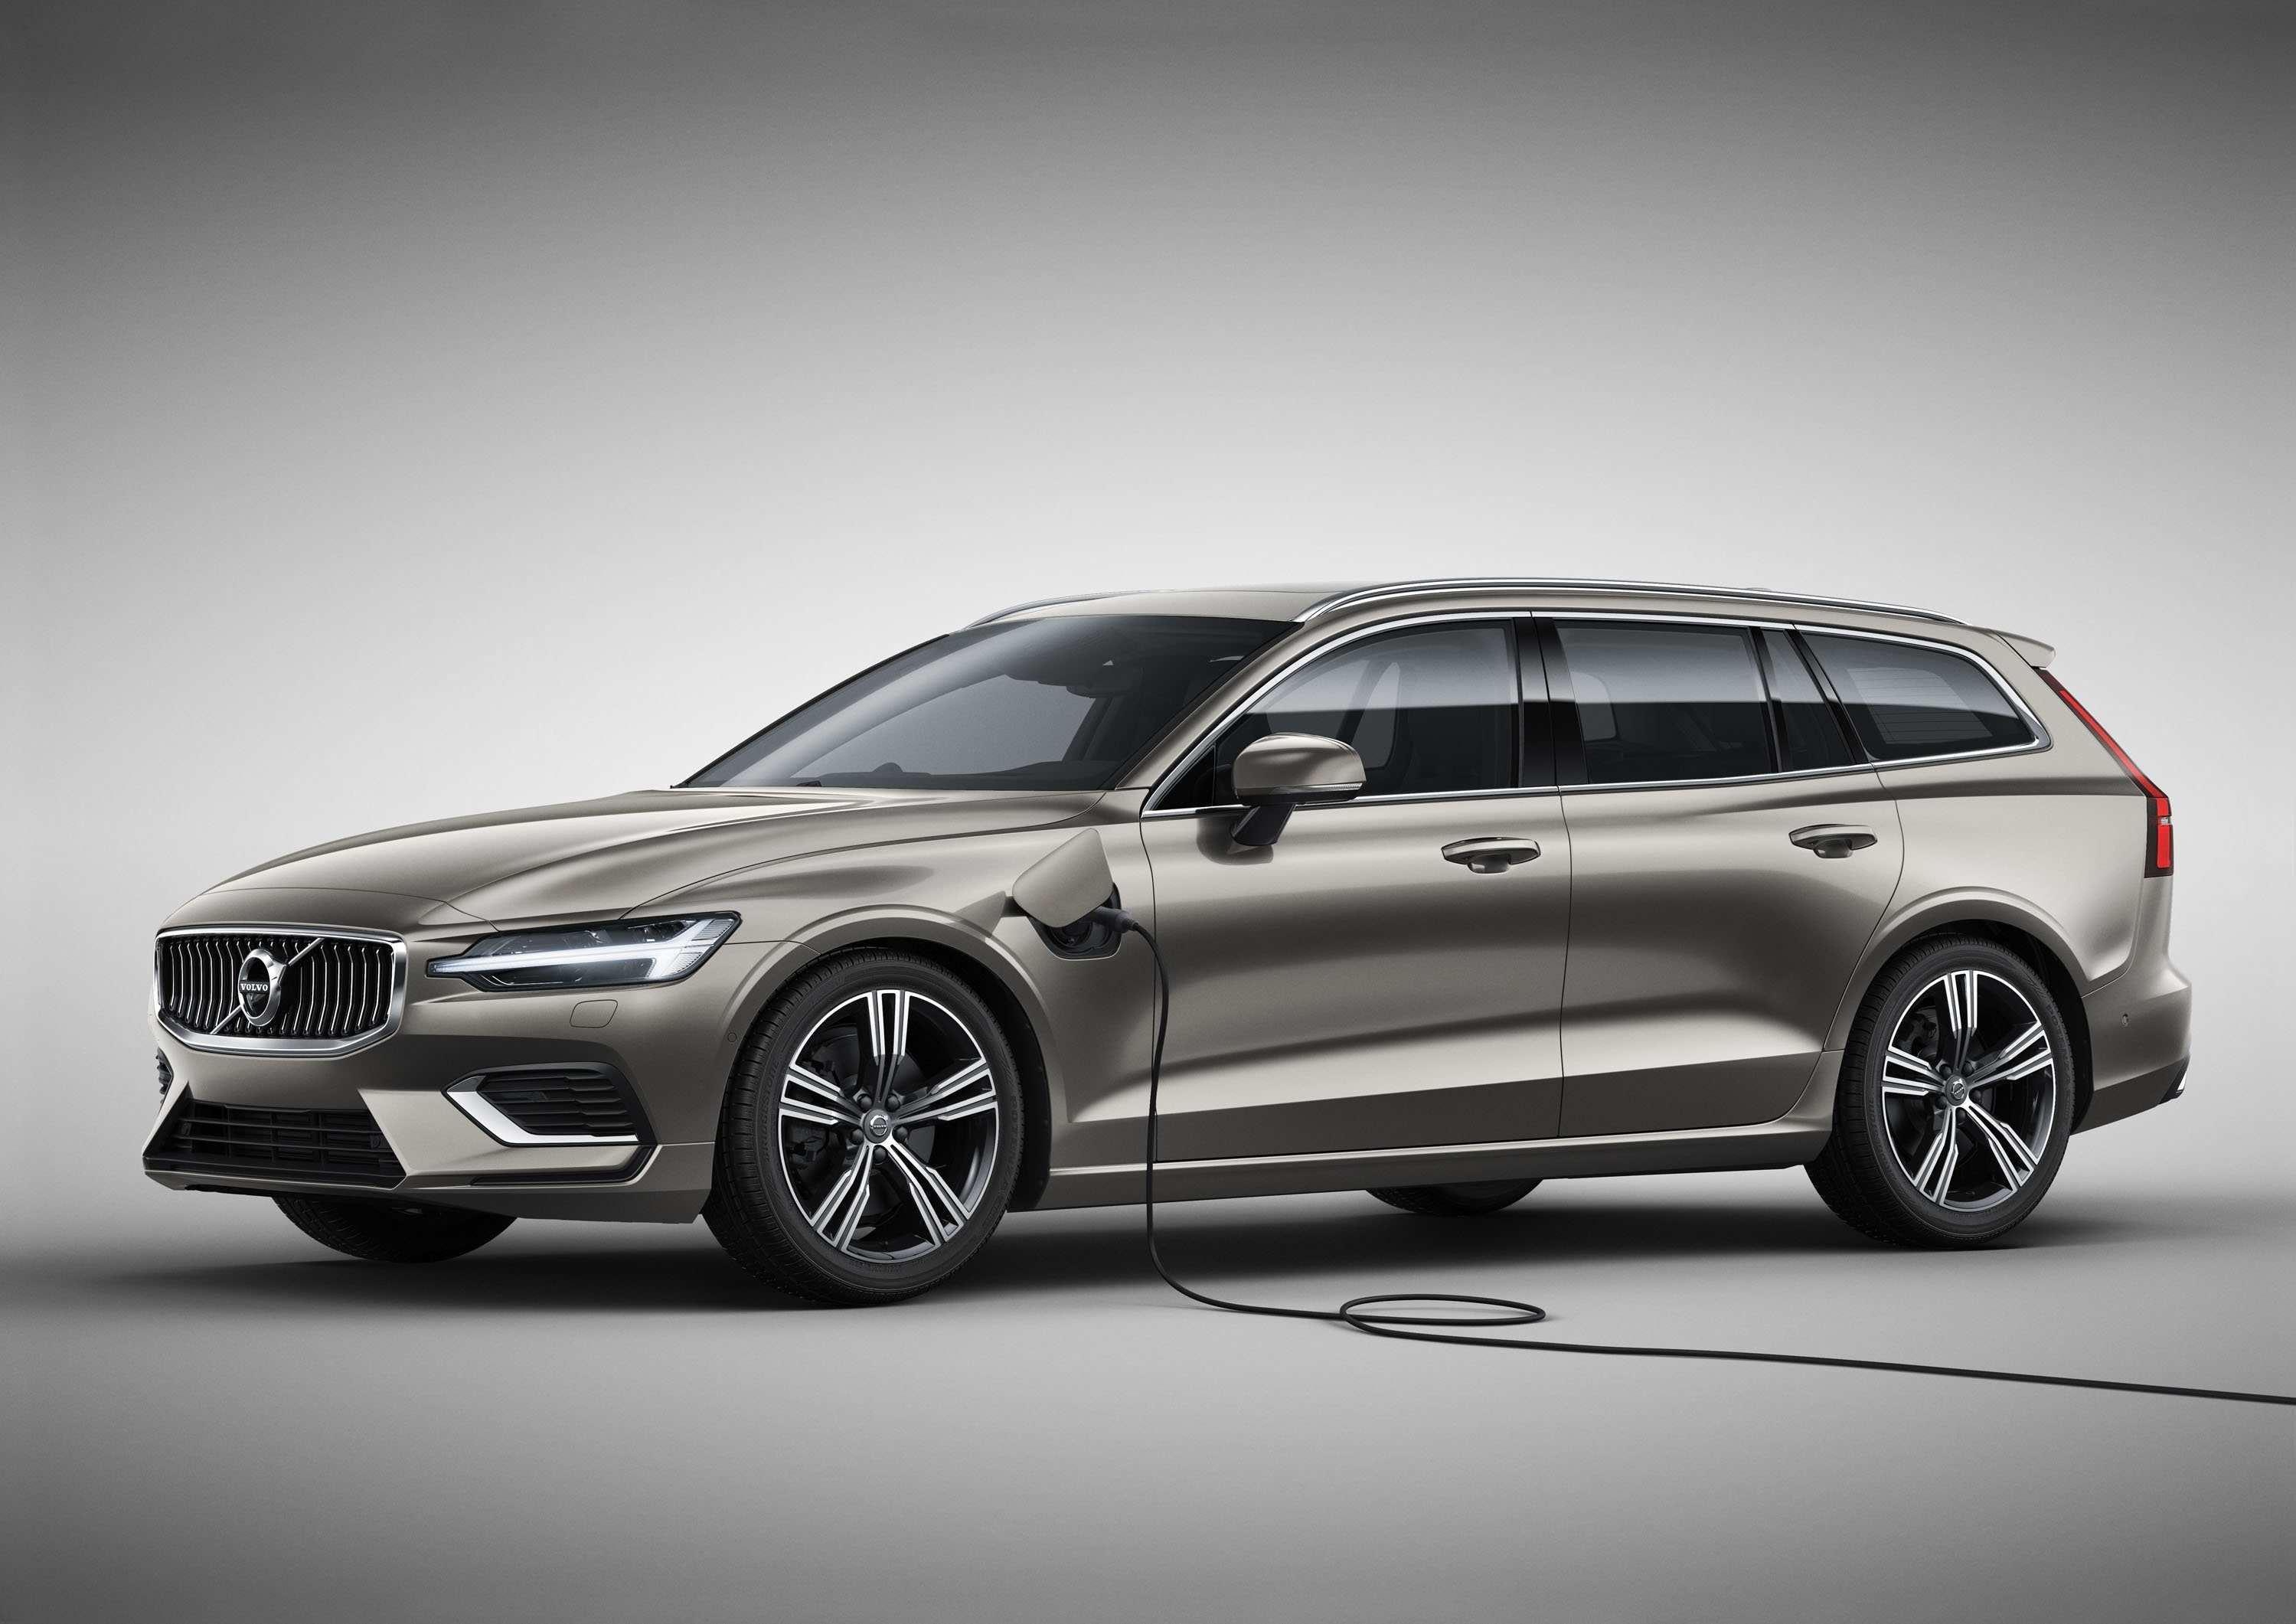 78 Concept of Volvo Xc70 Redesign Rumors with Volvo Xc70 Redesign